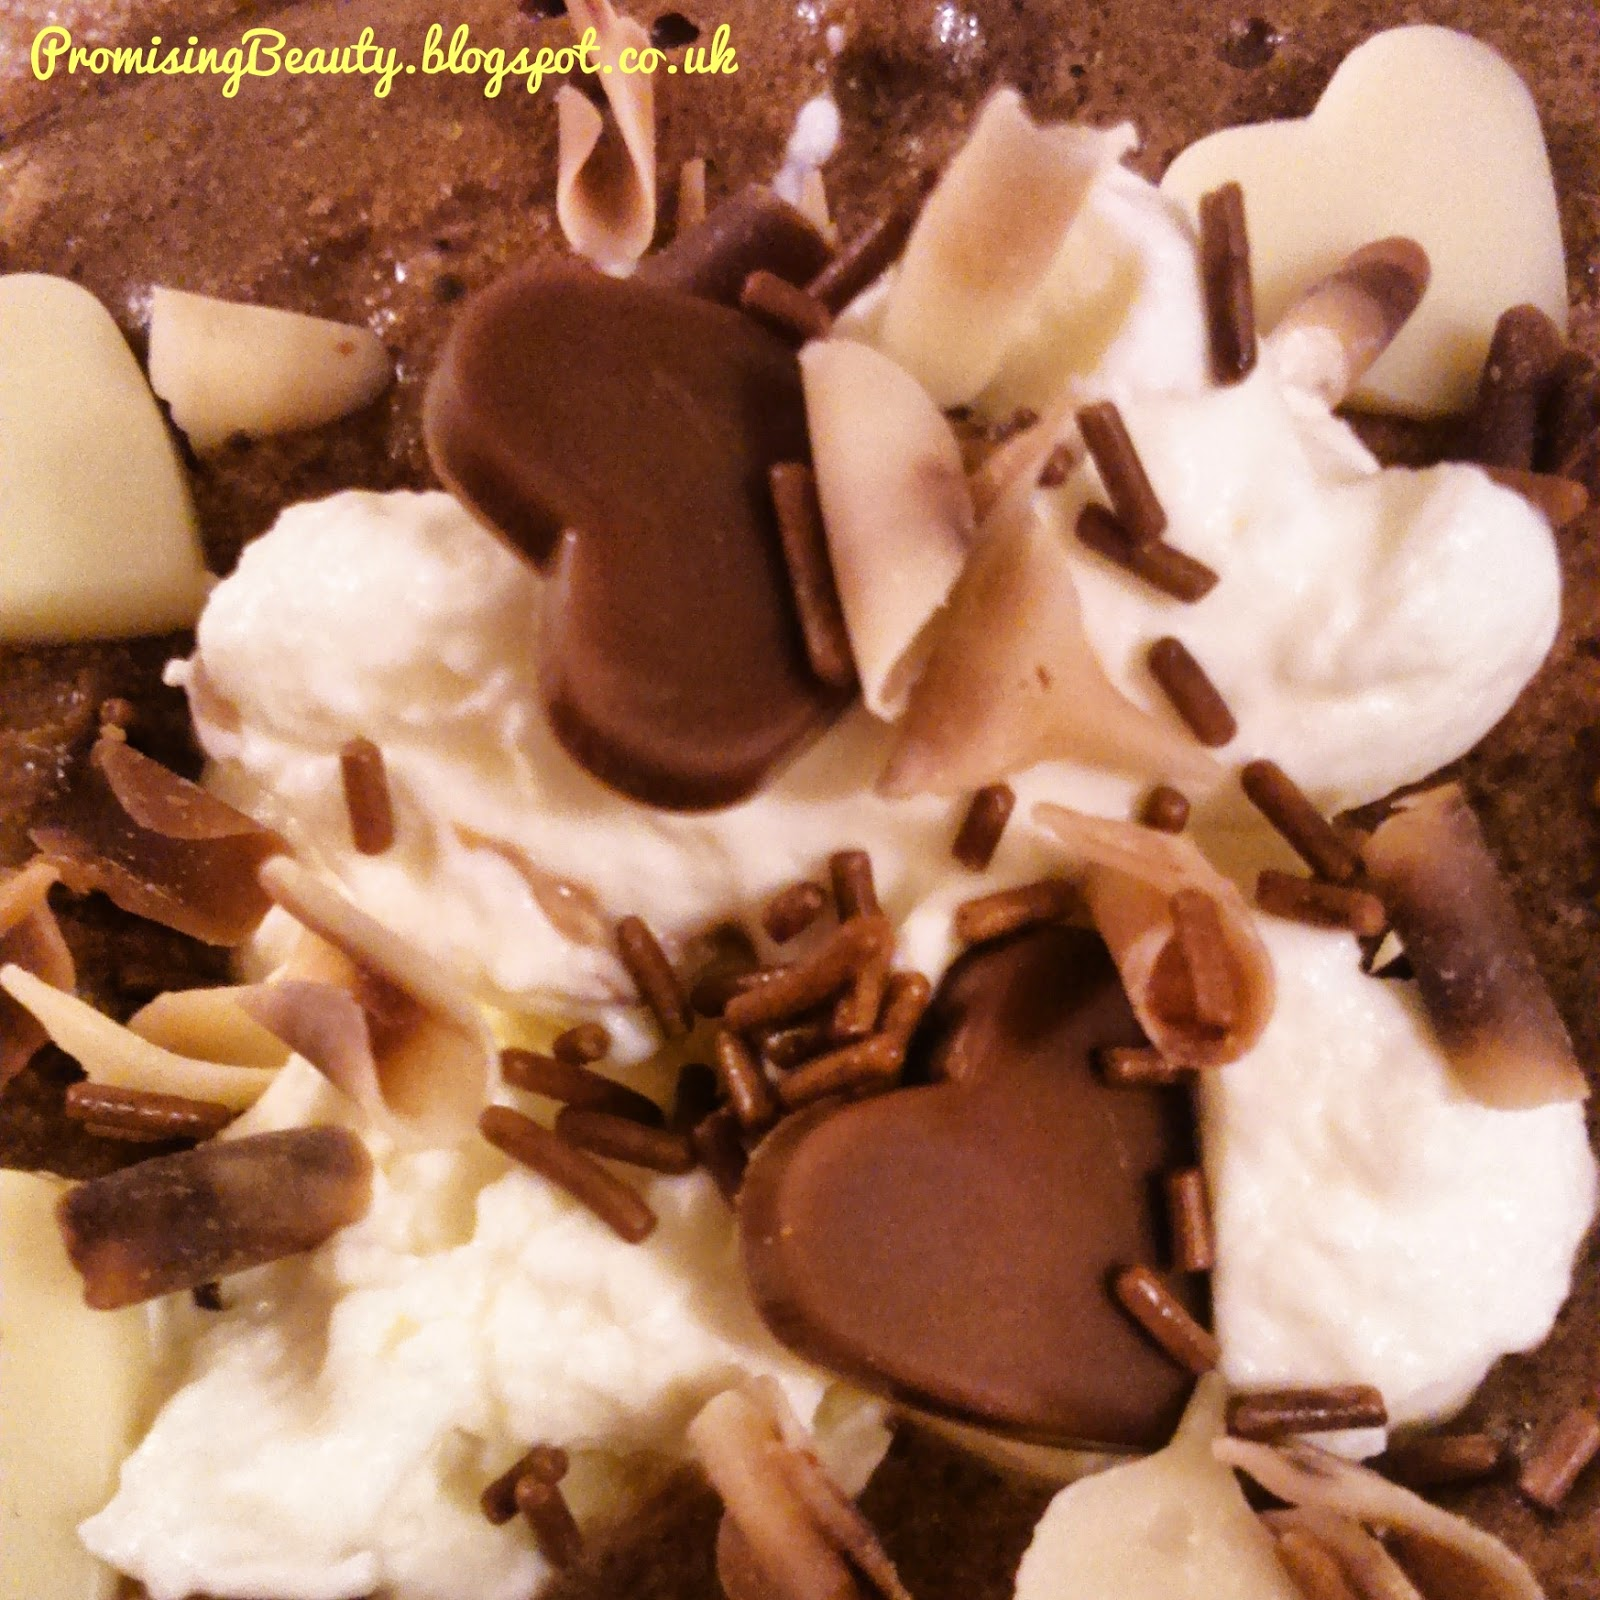 chocolate mousse topping, whipped cream, chocolate sprinkles, chocolate hearts. Yummy dessert